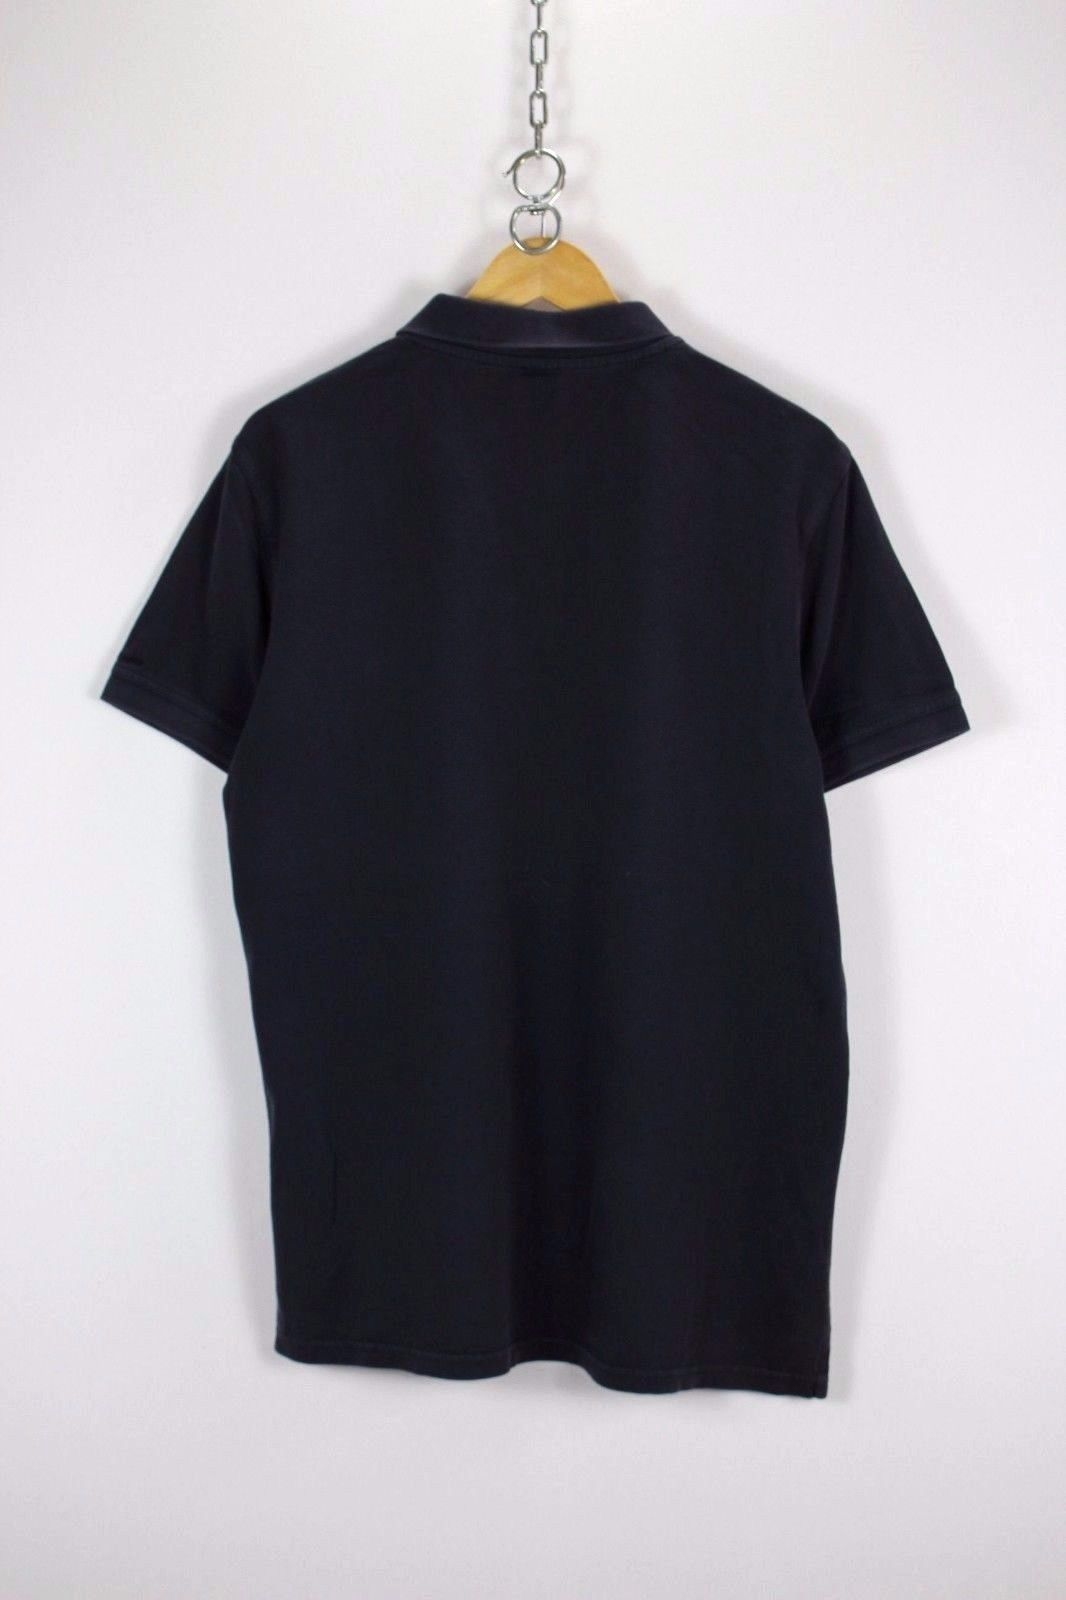 a121b94d4 Hugo Boss T Shirts Sale Uk - DREAMWORKS